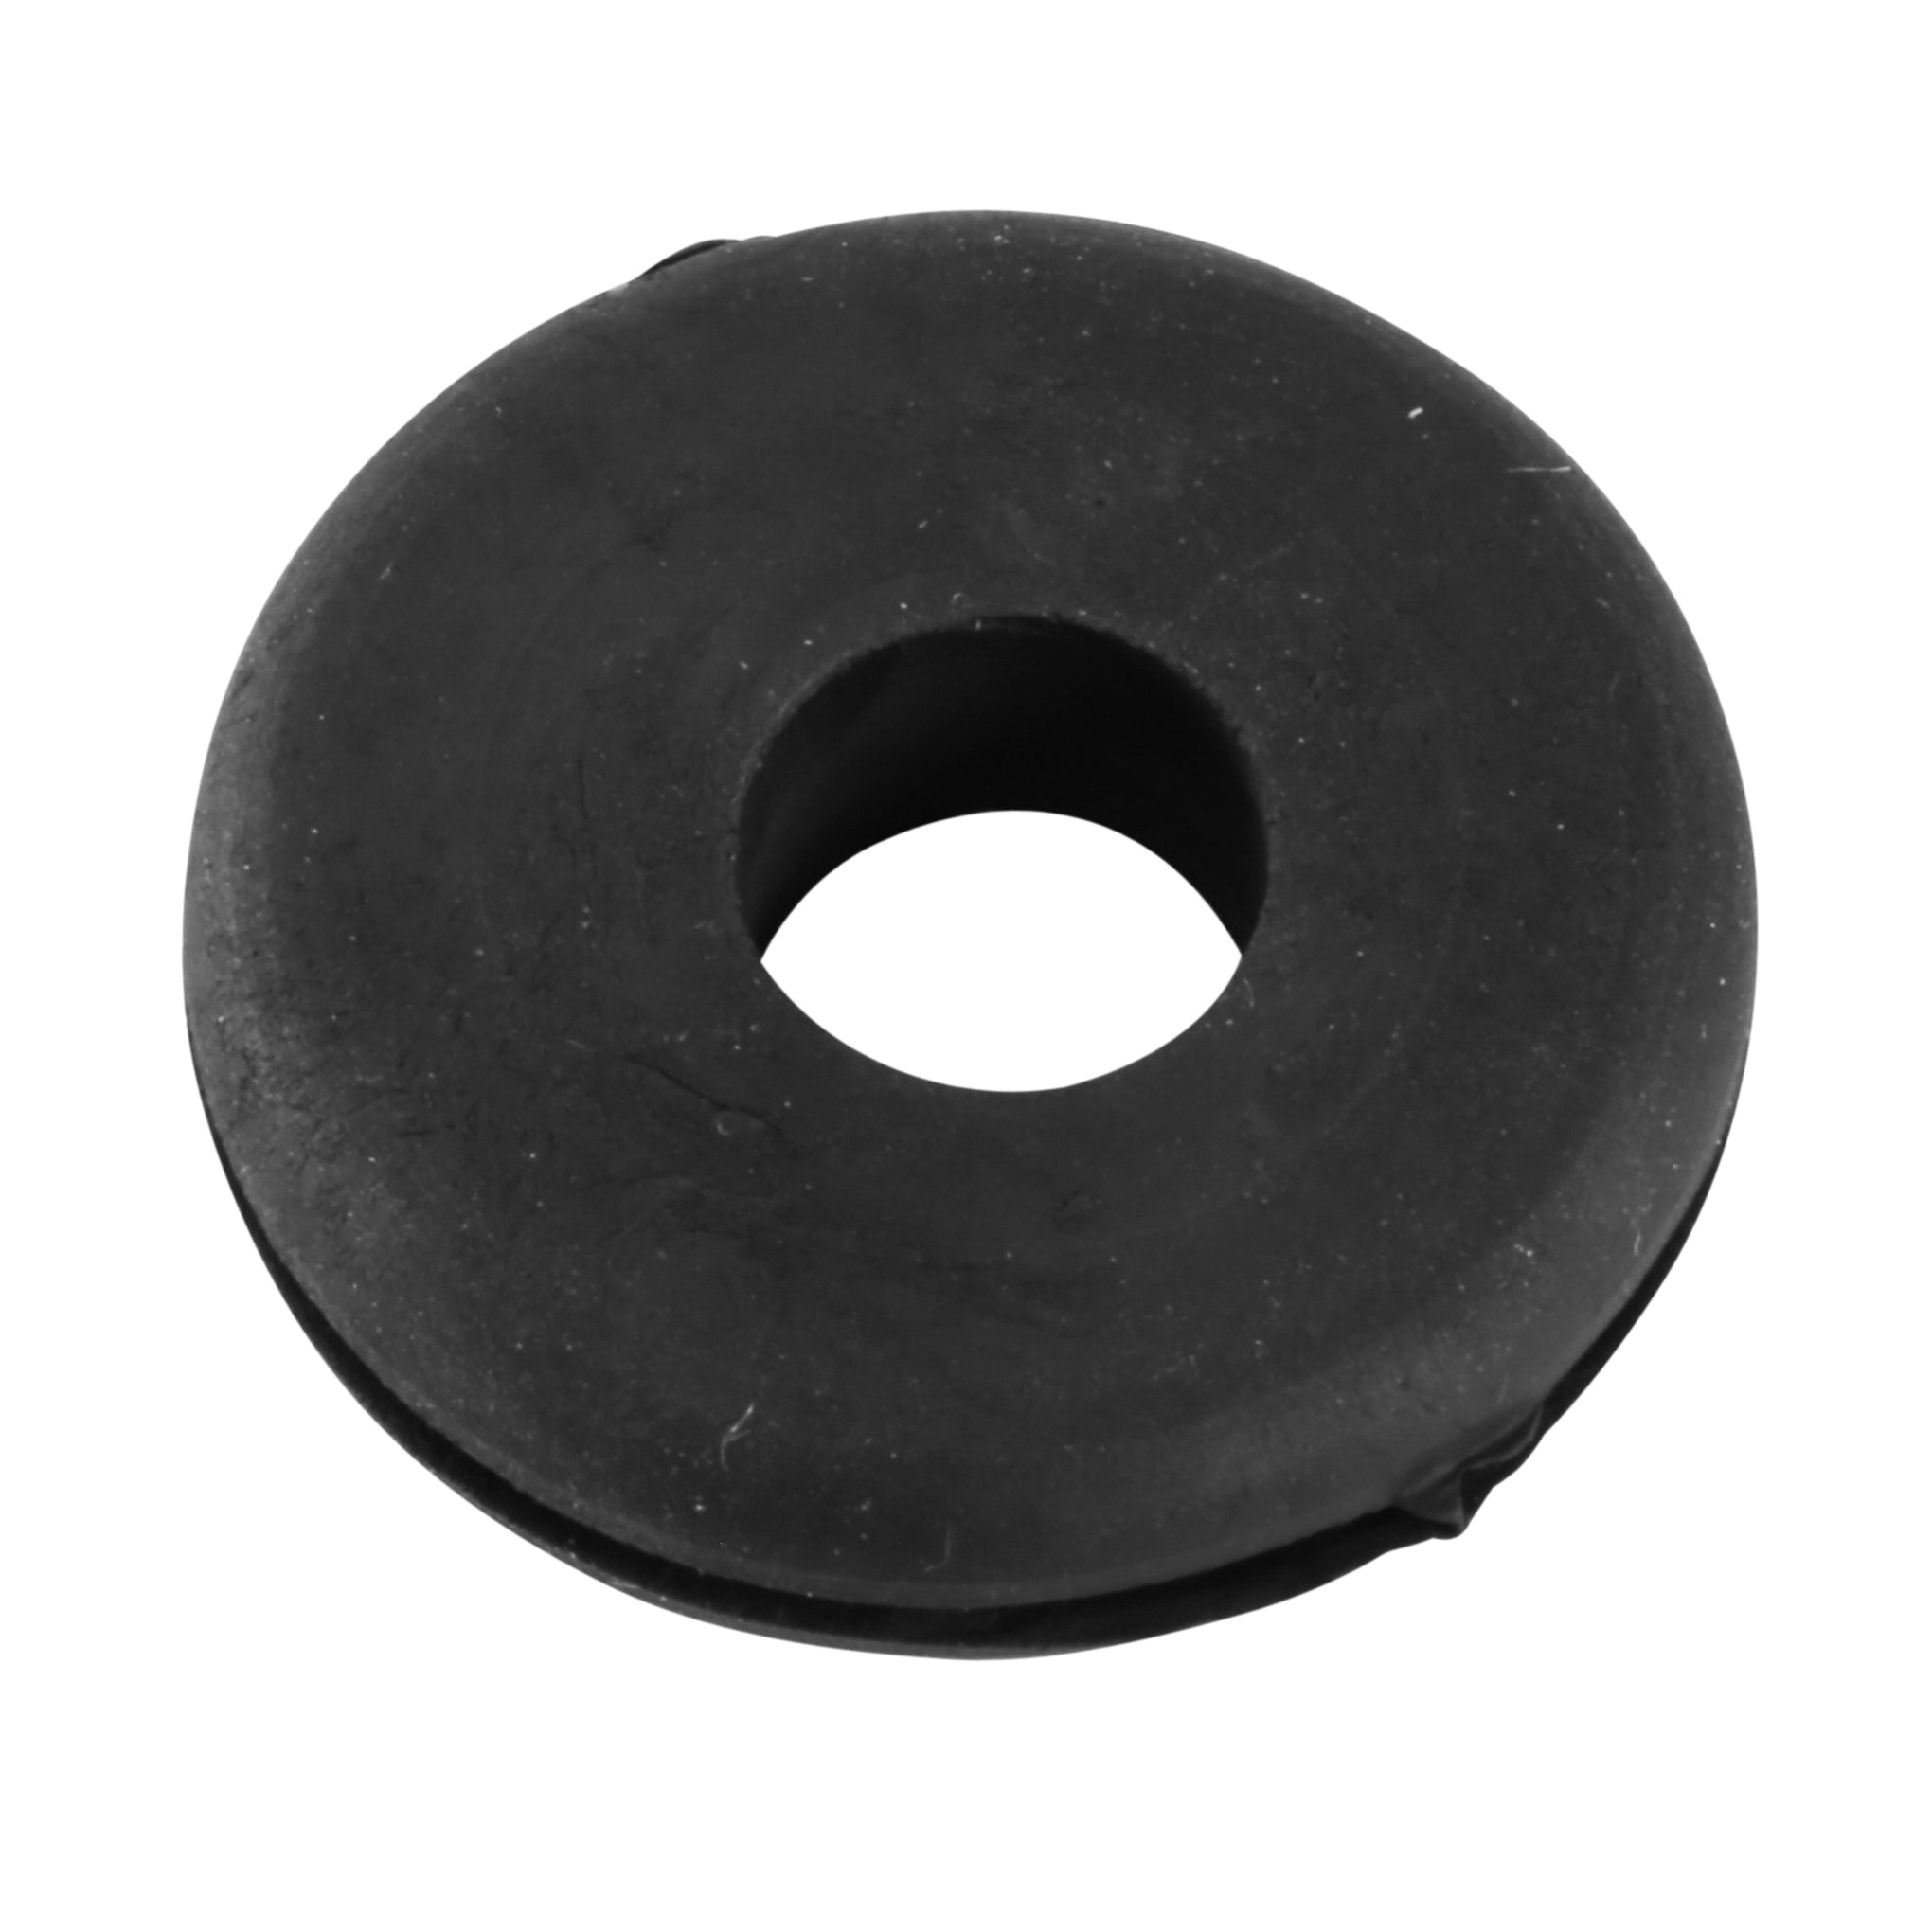 Wiper Hose Grommet for Firewall • 1940 Closed Car & 1941-48 All